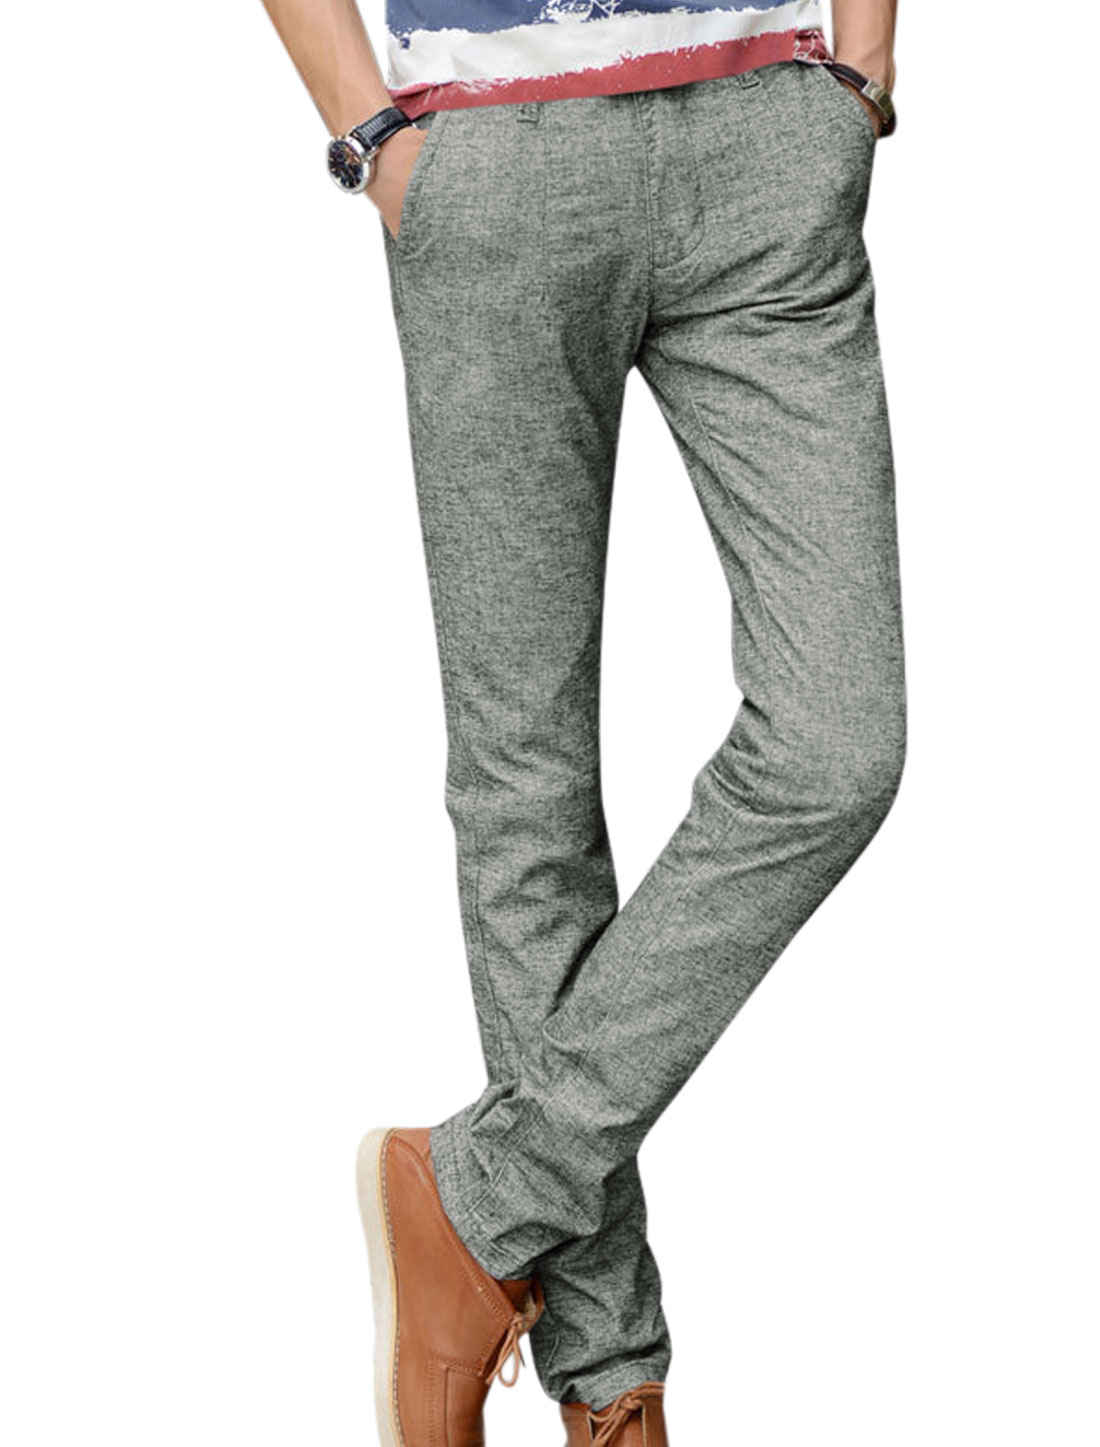 Men Light Cool Gray Mid Rise Zip Fly Belt Loop Straight Casual Pants W30